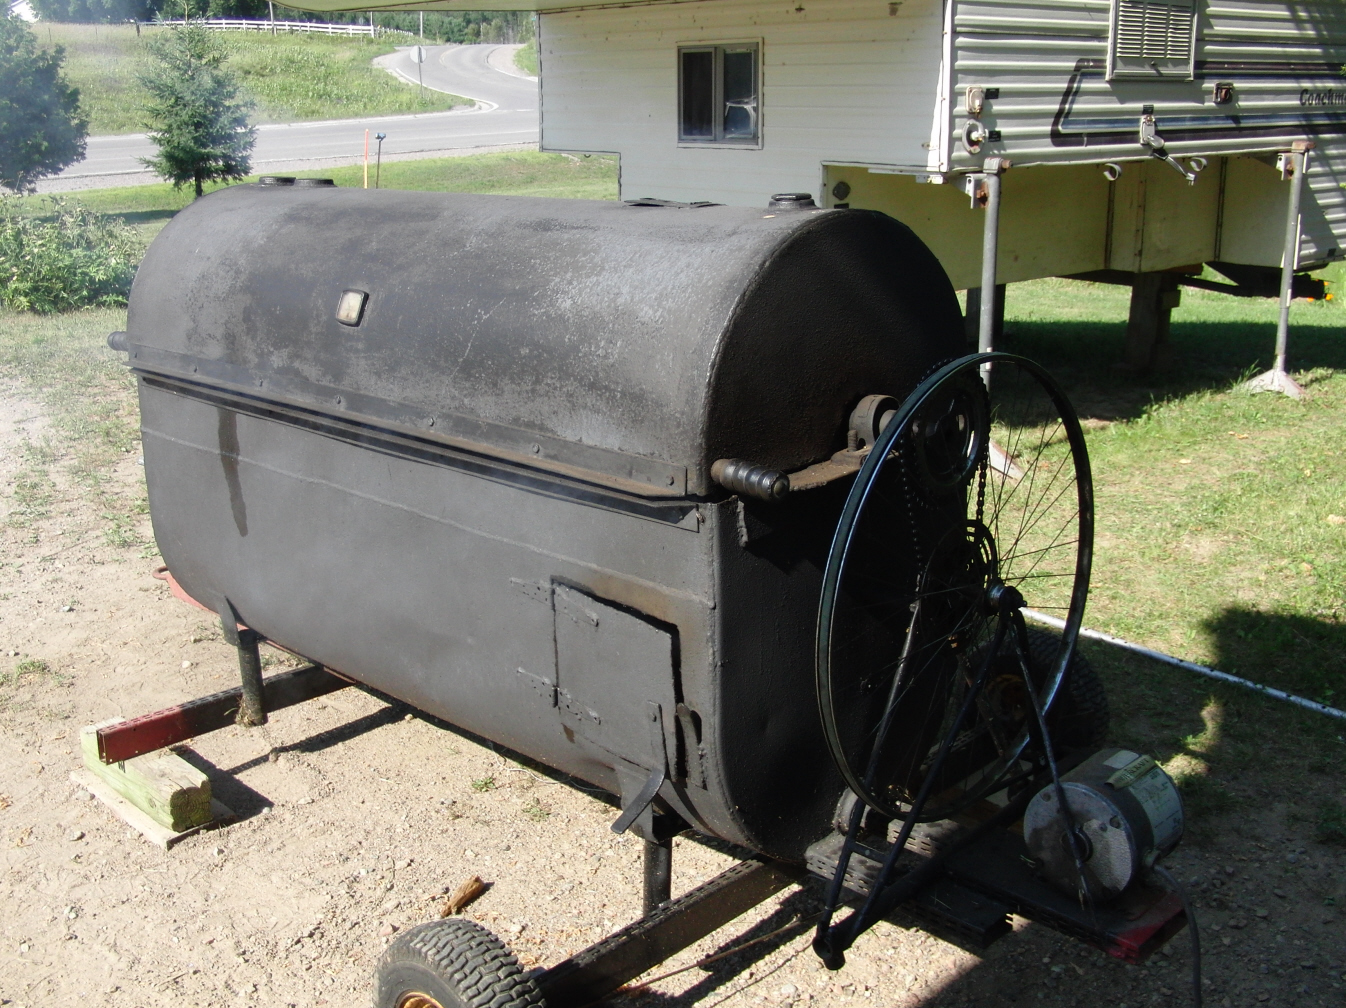 Tailgatesmoker additionally Hechos De Madera 111281 as well 1941 HUDSON PICKUP 81812 furthermore Bl together with 3170335 Dolly Plans For A C3 Body. on wood car rotisserie